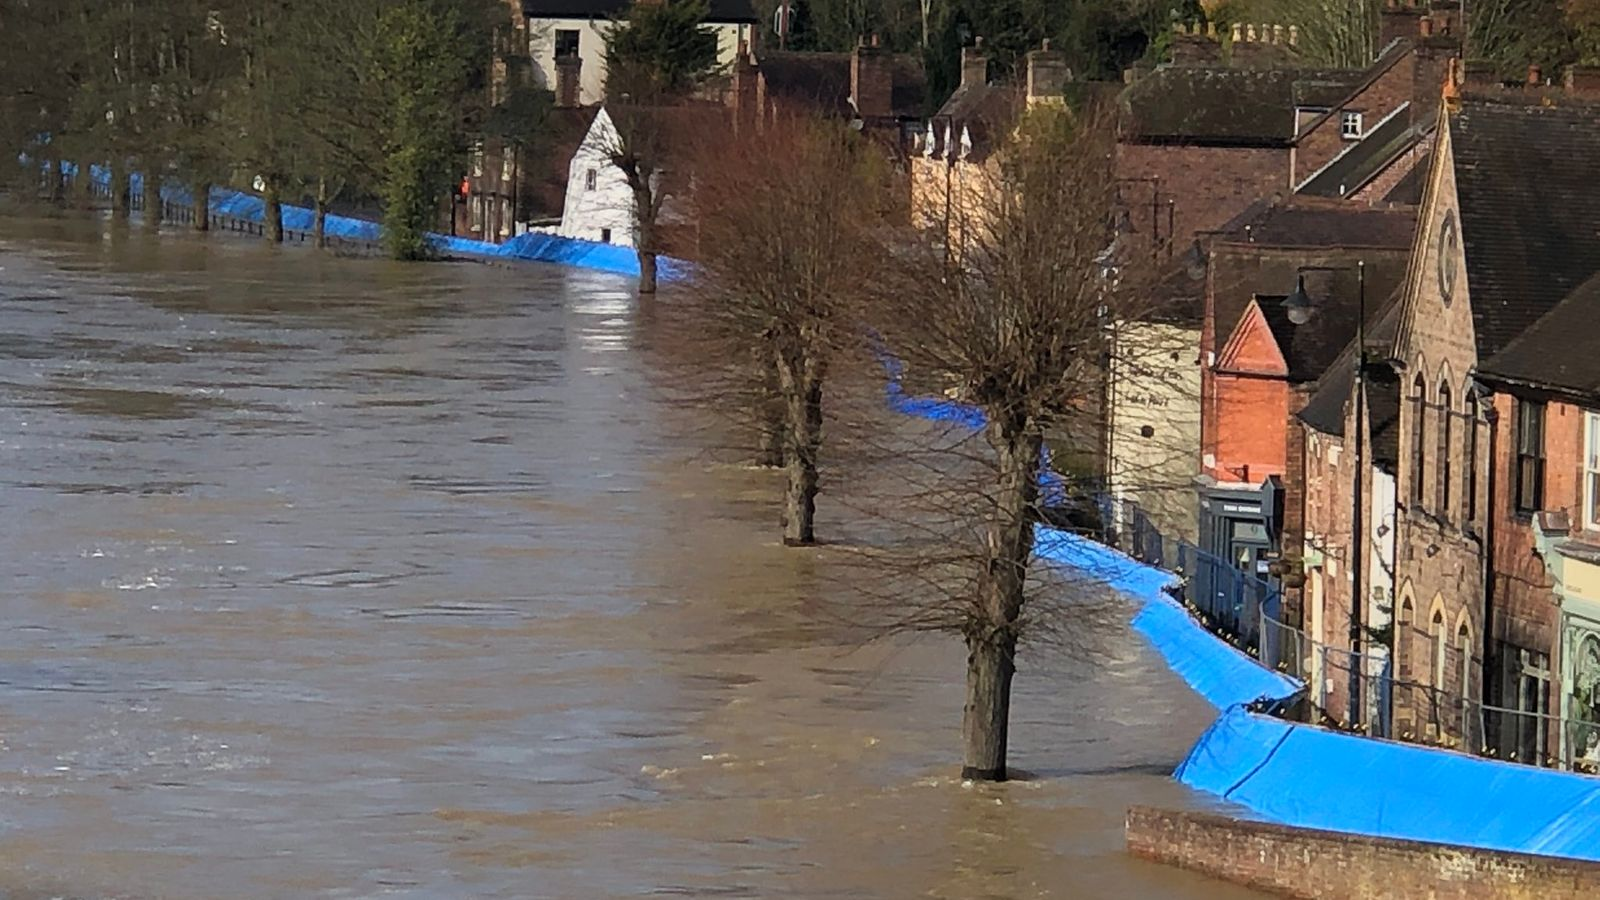 'Immediate evacuation' ordered in town as flood barriers 'overwhelmed'